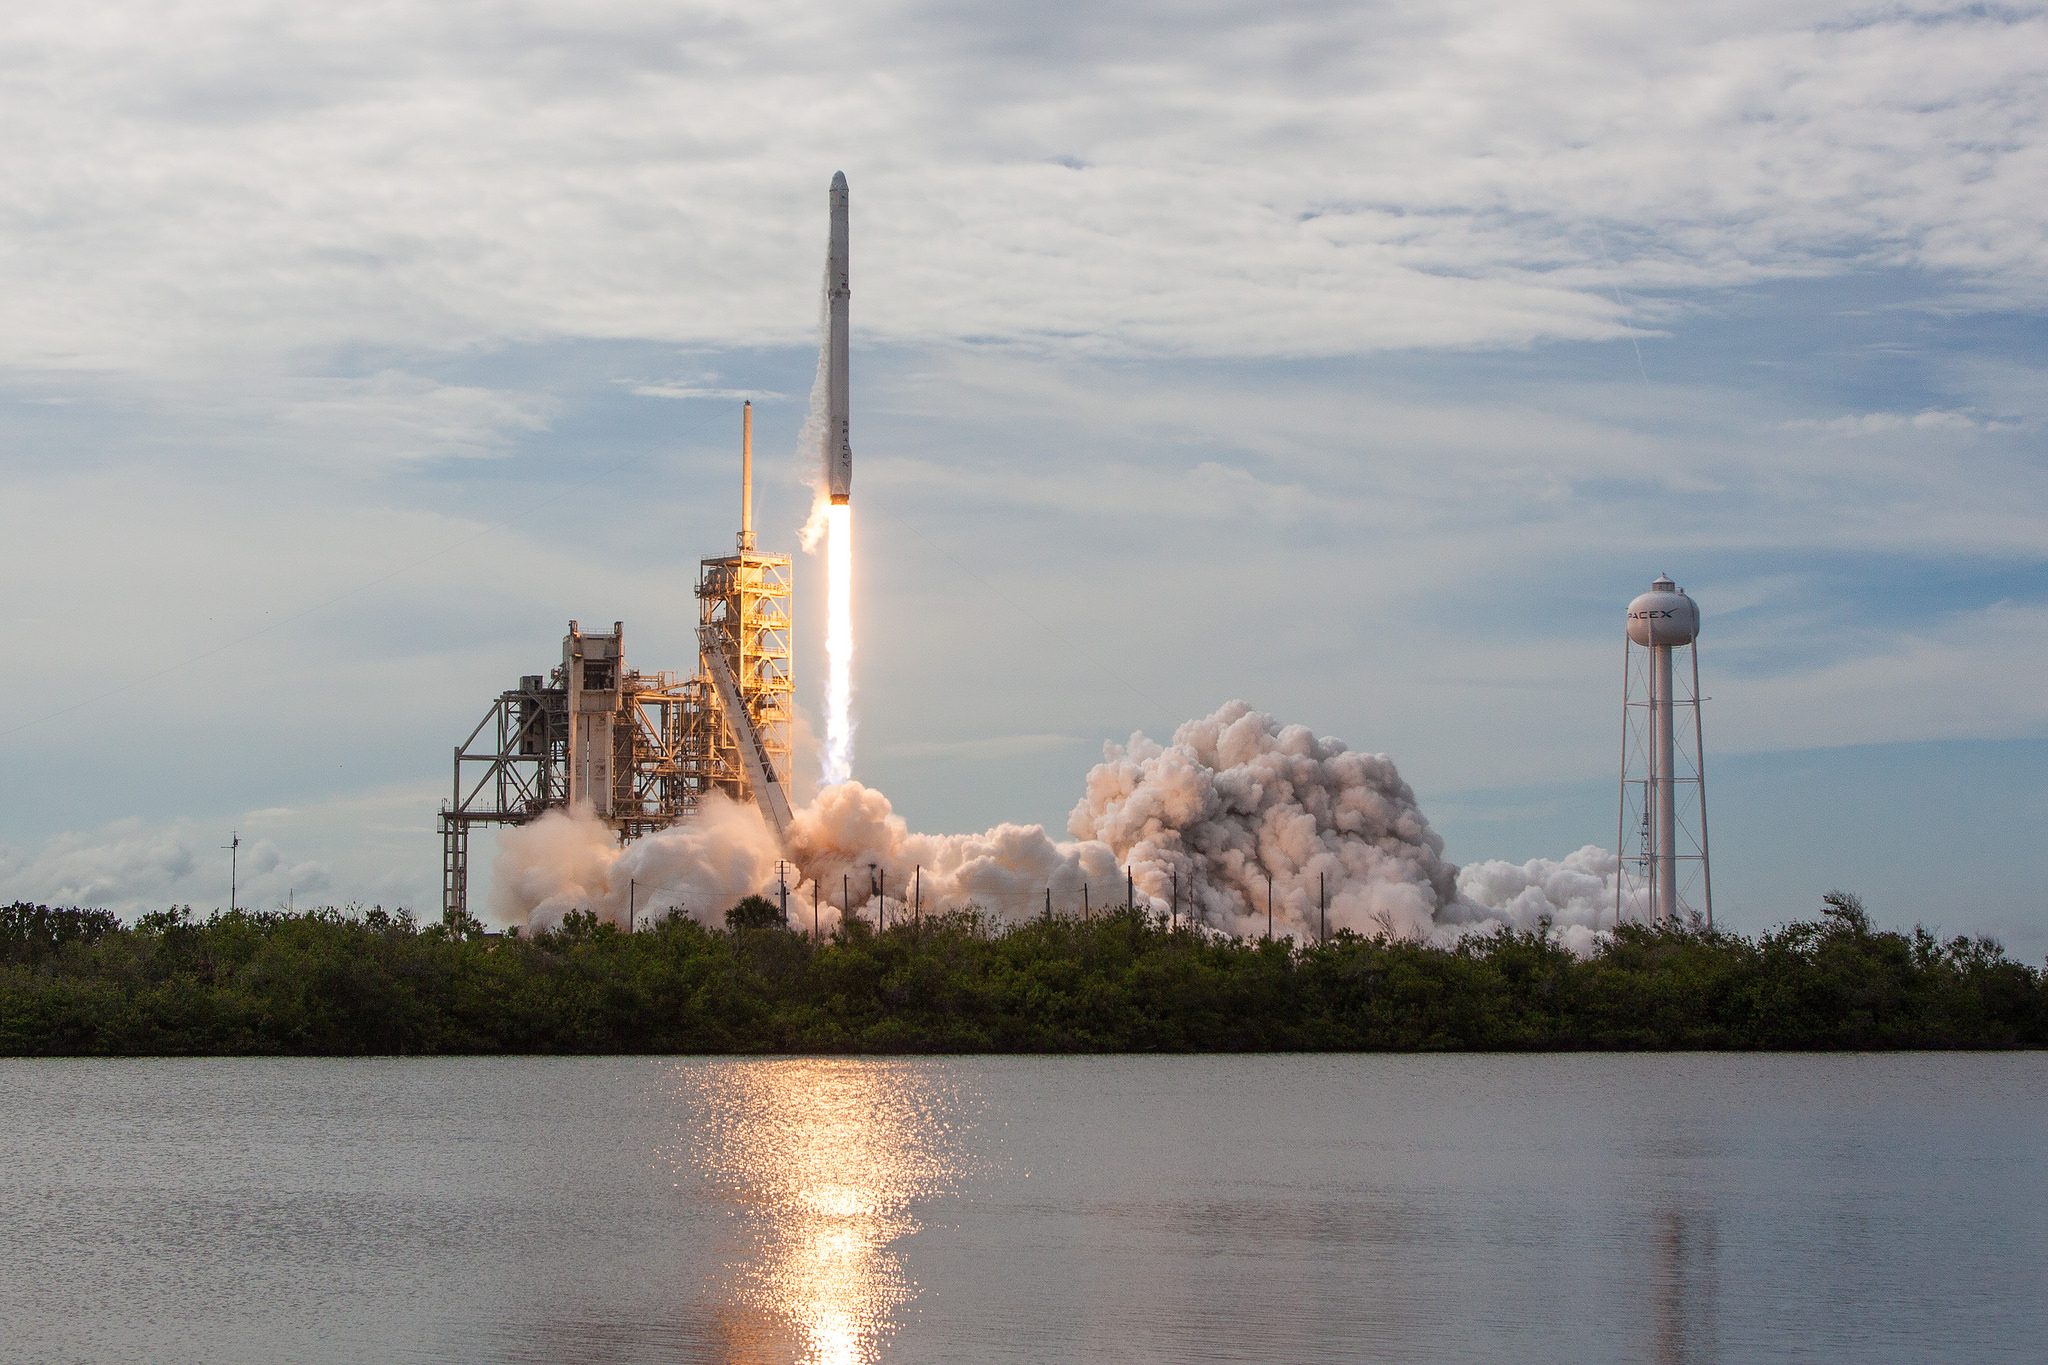 spacex dragon launch - HD1800×1200